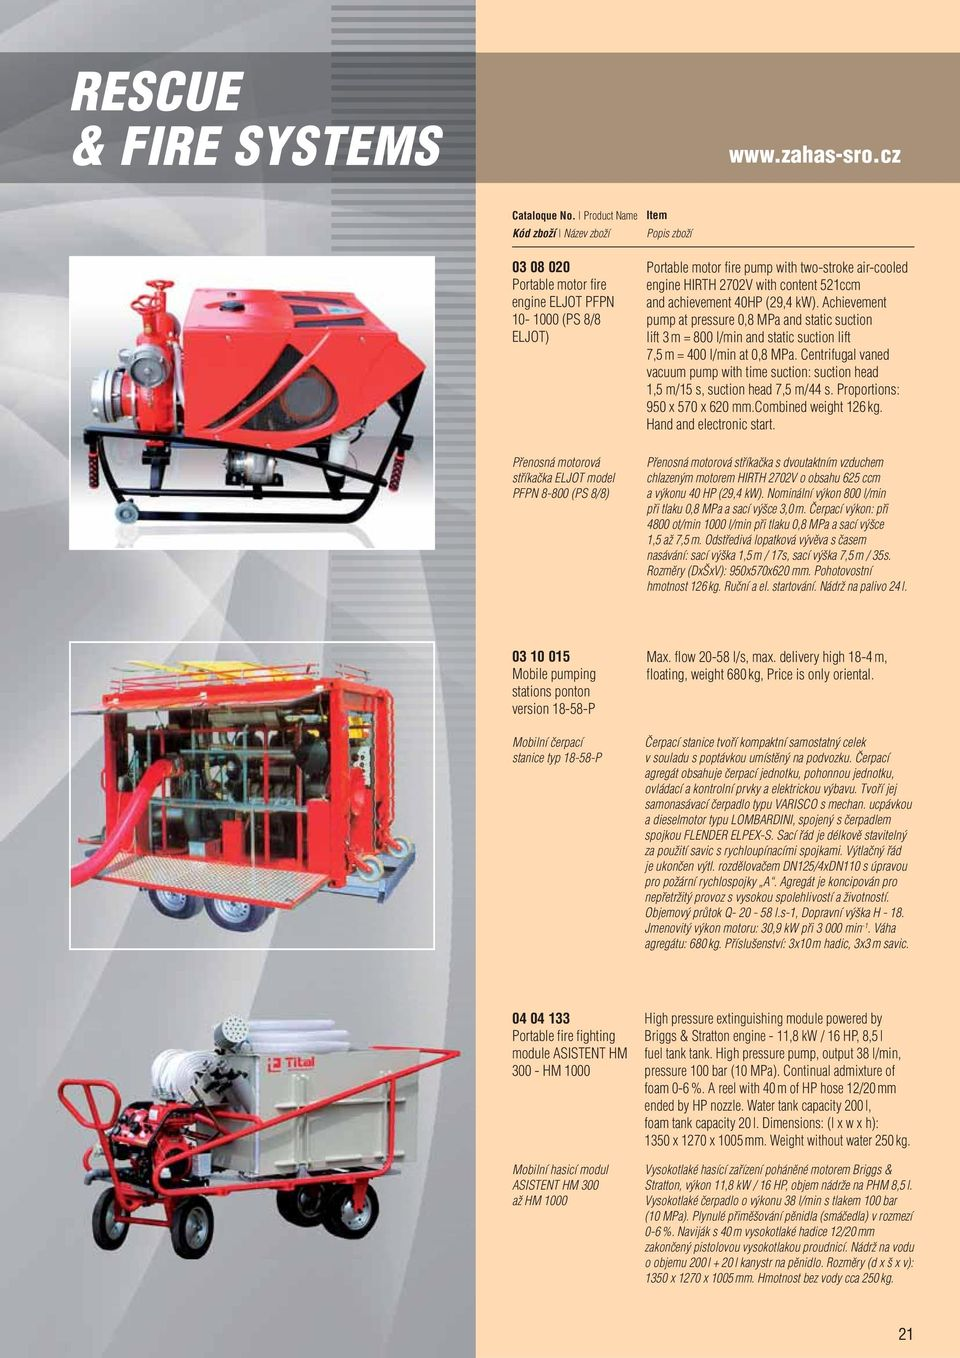 2702V with content 521ccm and achievement 40HP (29,4 kw). Achievement pump at pressure 0,8 MPa and static suction lift 3 m = 800 l/min and static suction lift 7,5 m = 400 l/min at 0,8 MPa.